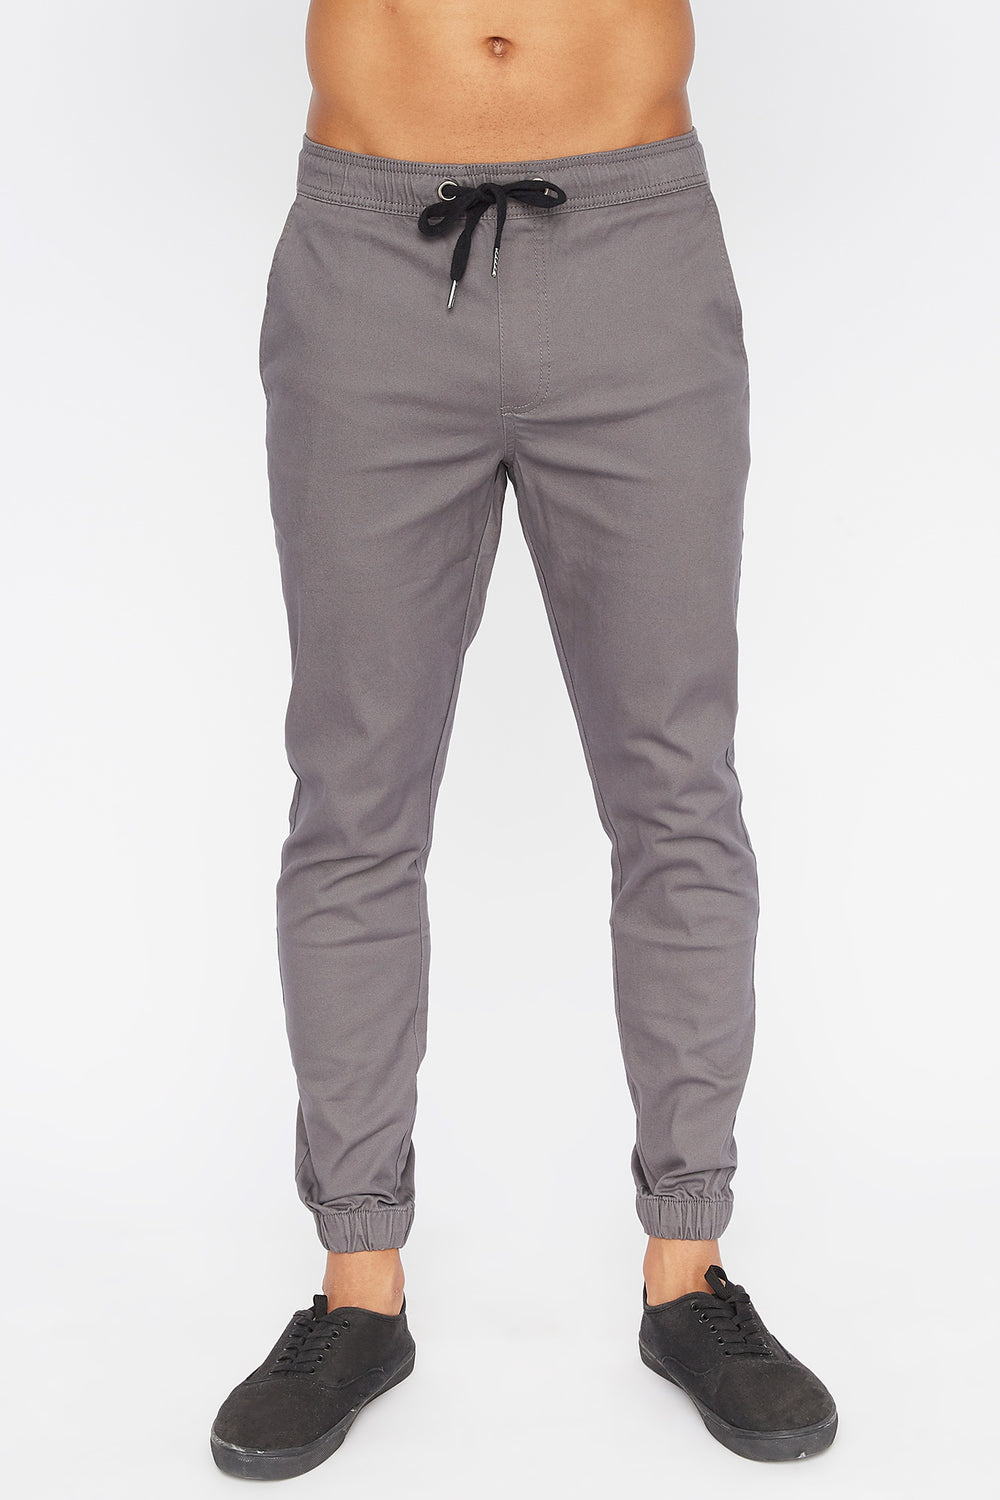 West49 Mens Solid Twill Basic Jogger Heather Grey